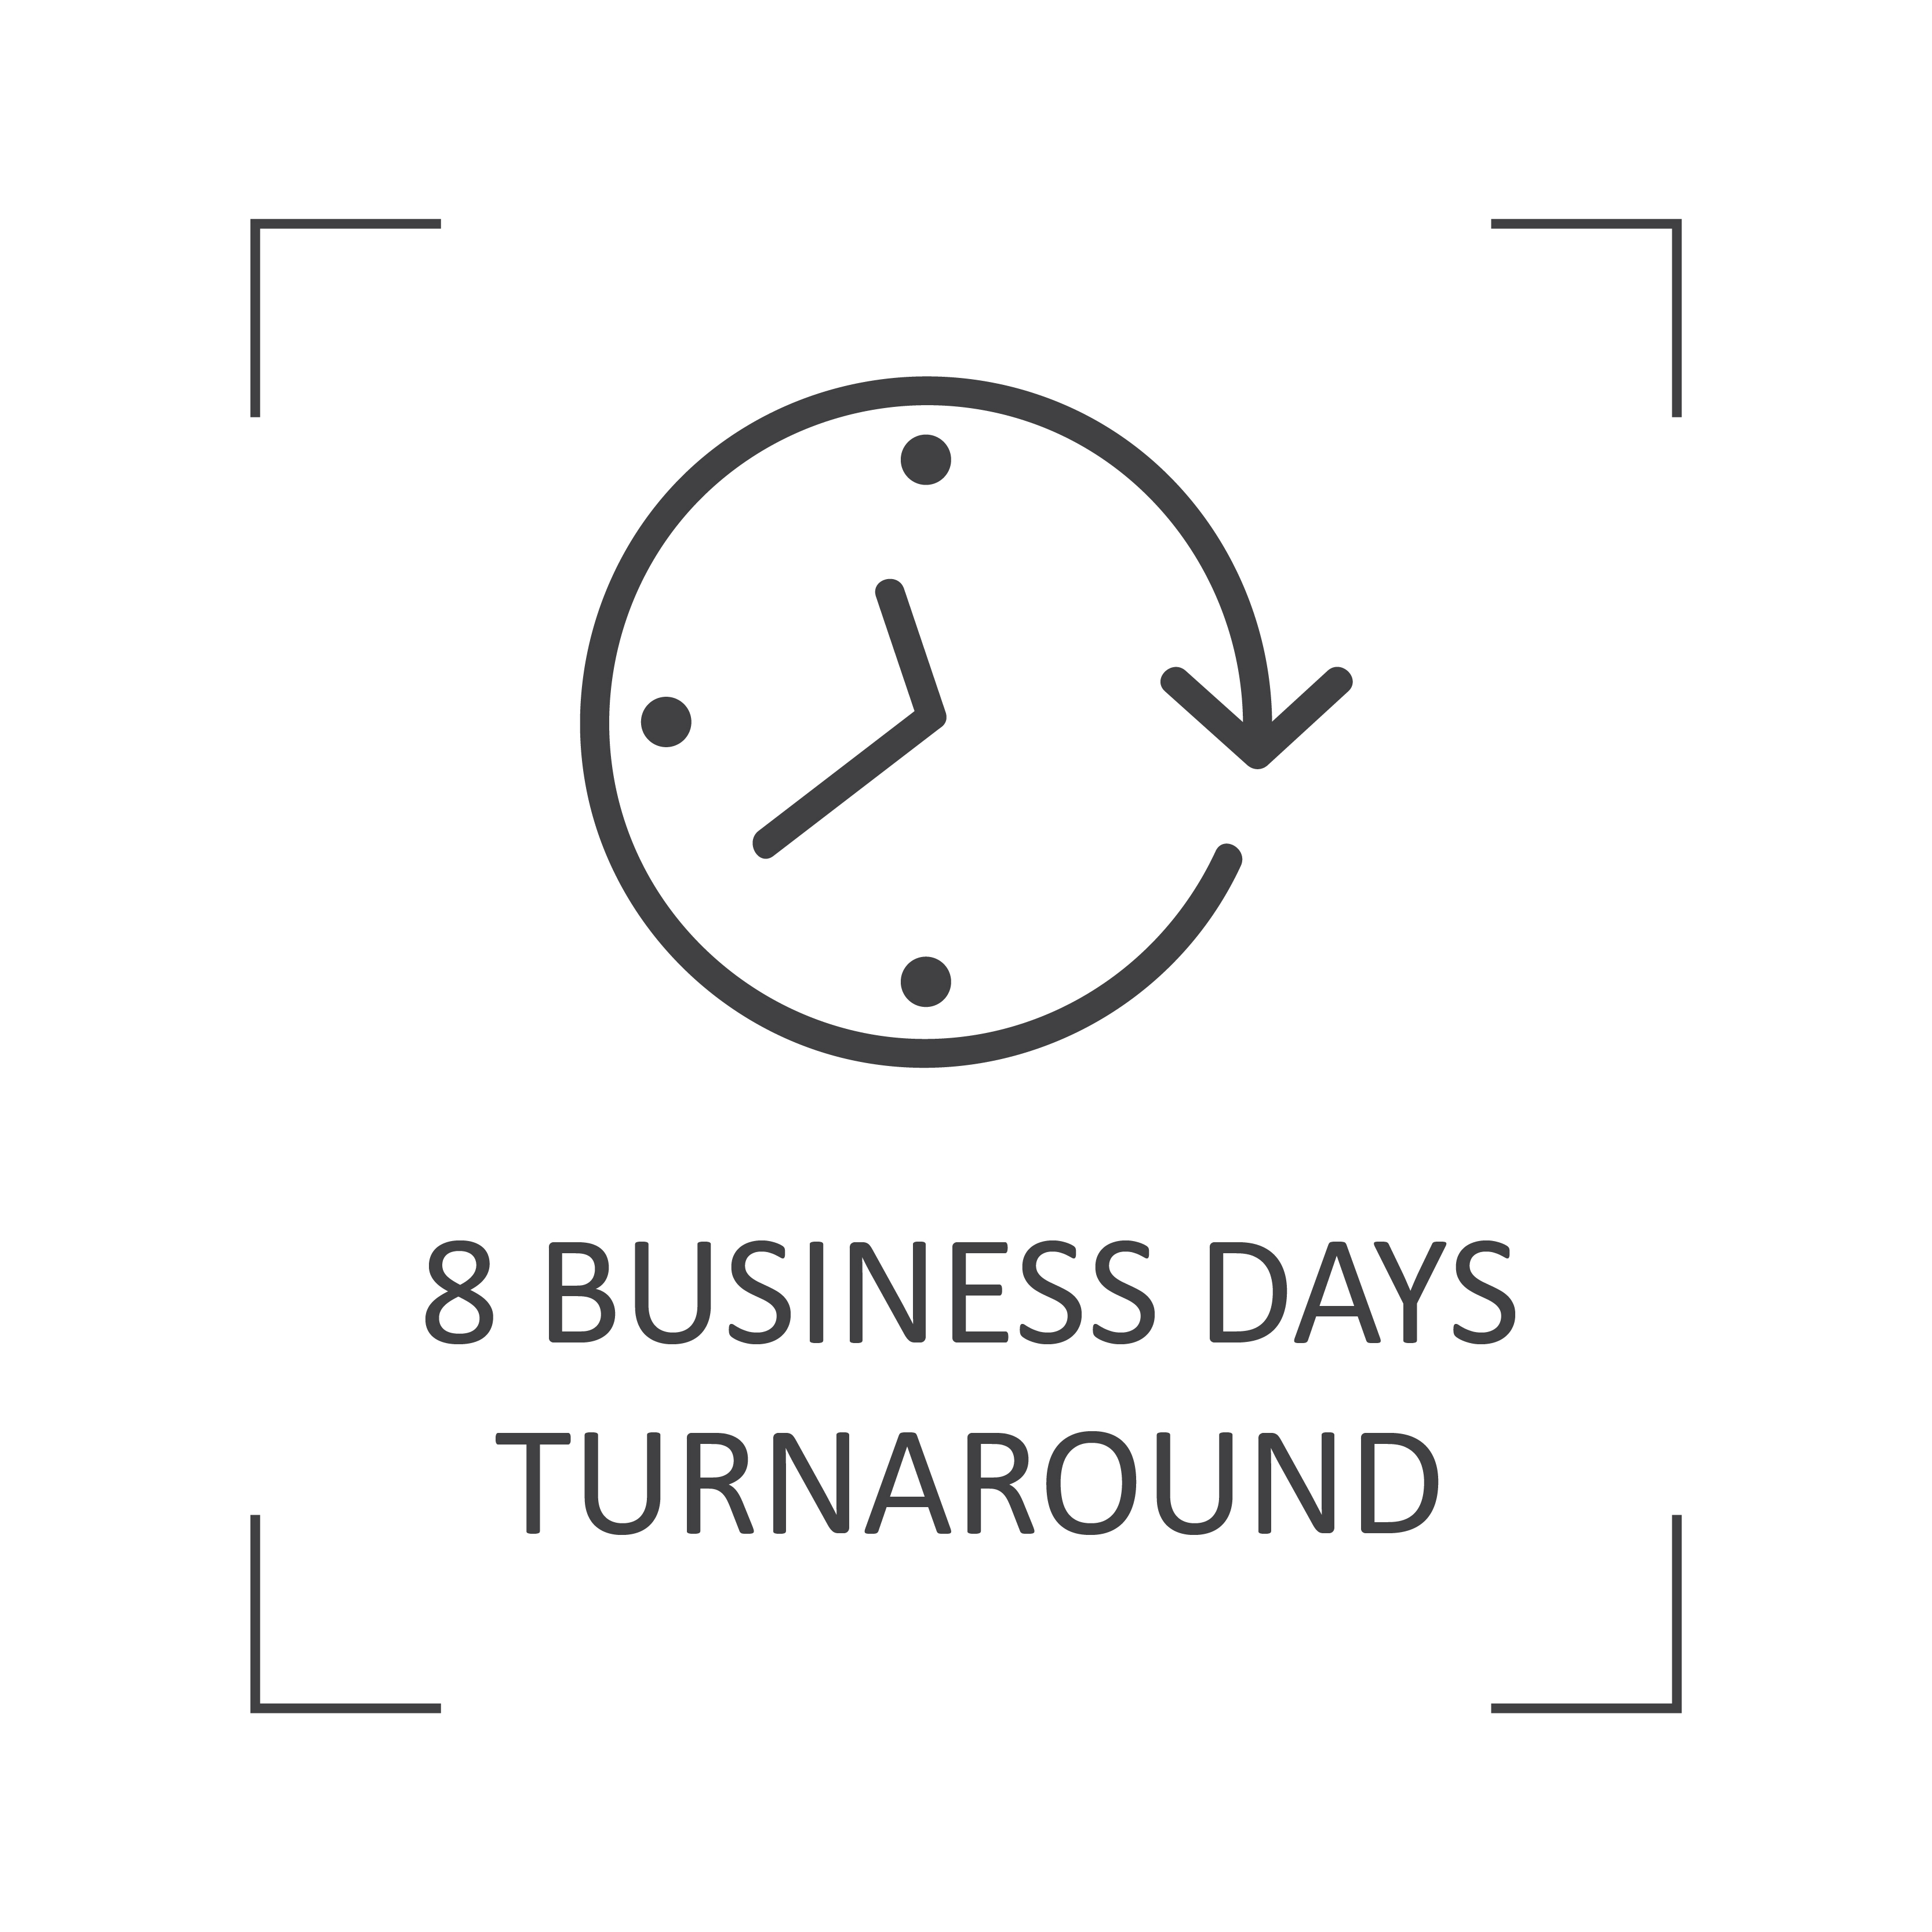 8-10 days turnaround